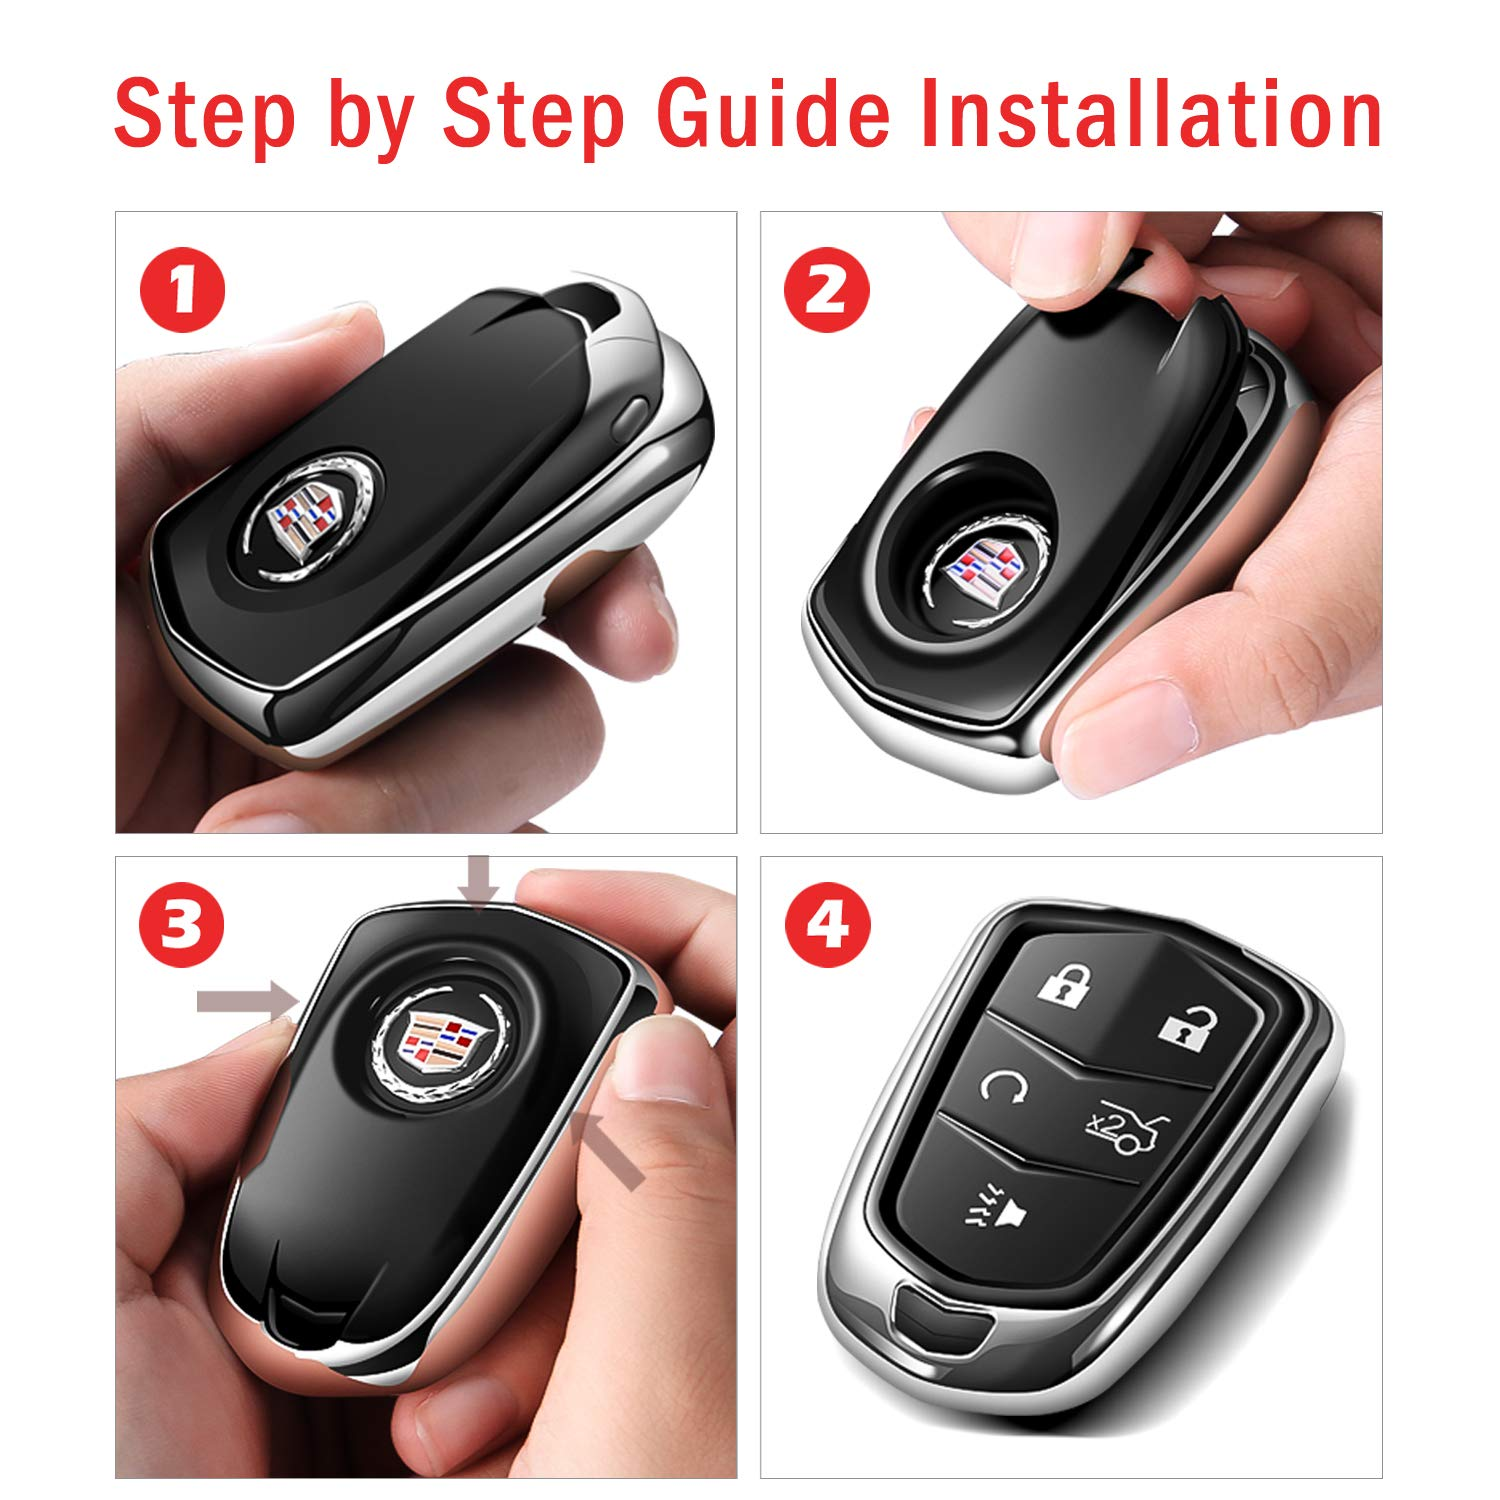 and CT6, Intermerge for Cadillac Key Fob Cover SRX Silver,5-Buttons CTS Premium Soft TPU 360 Degree Full Protection Key Fob Casel Compatible with 2015-2019 Cadillac Escalade XT5 STS ATS